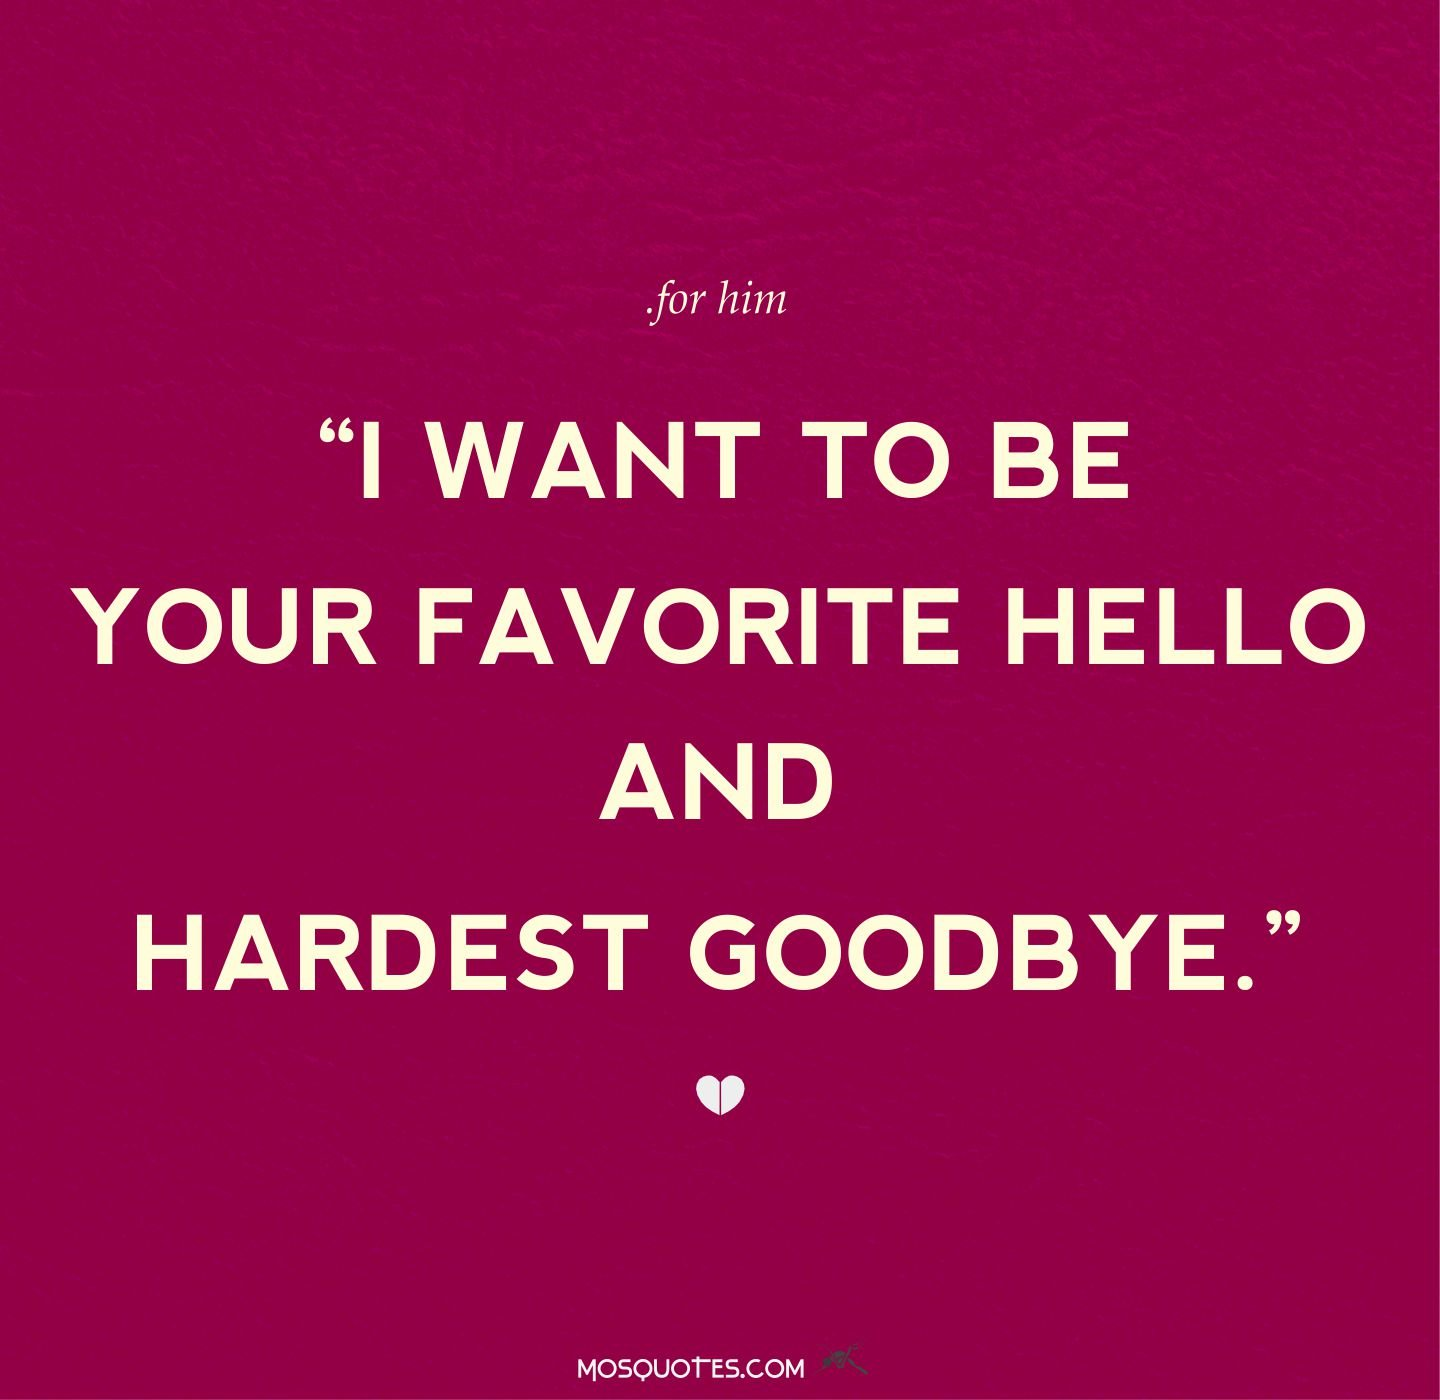 Quotes About Him: Goodbye Love Quotes For Him. QuotesGram